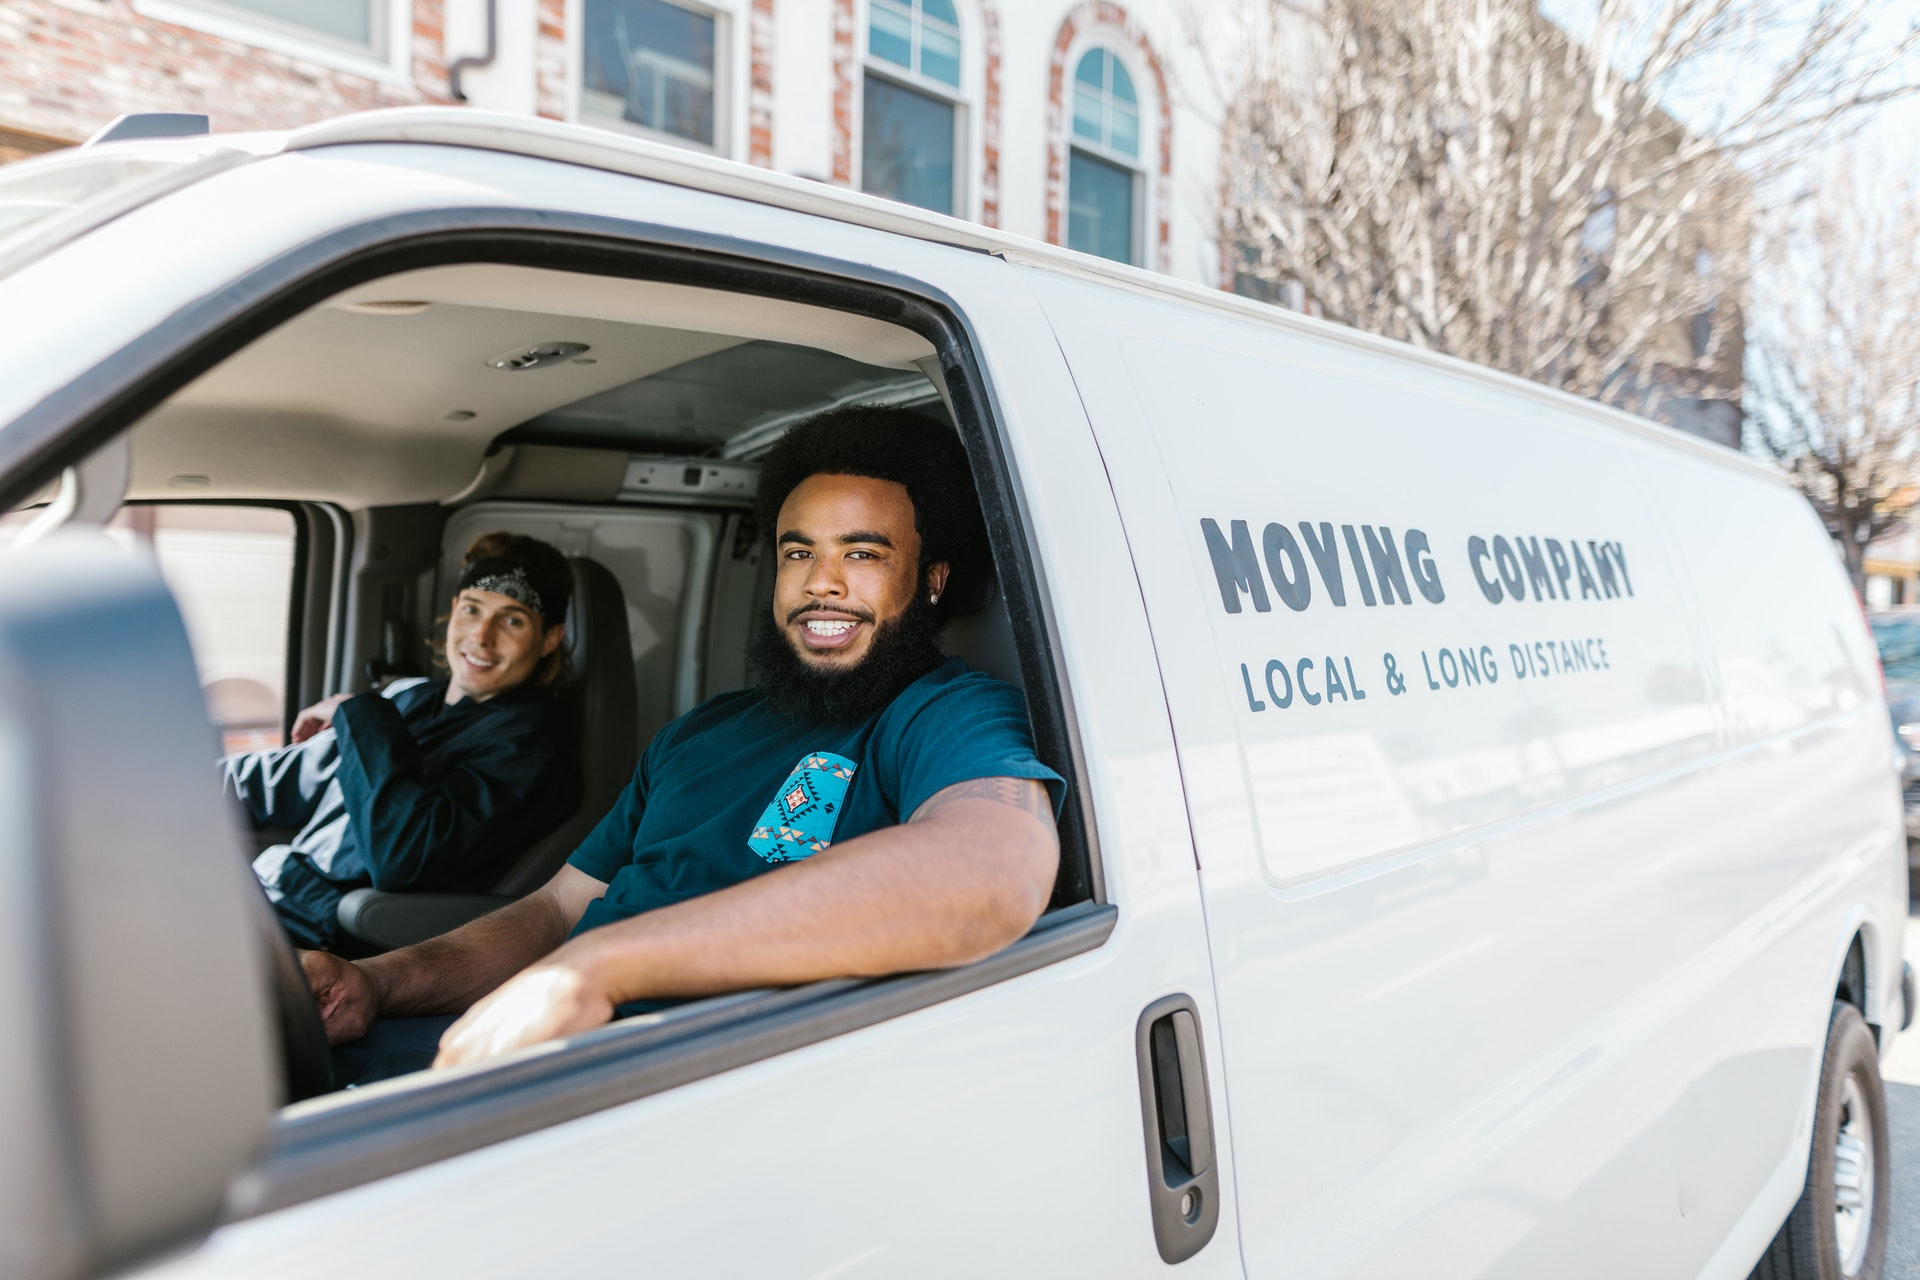 How to recognize fraudulent movers in NYC